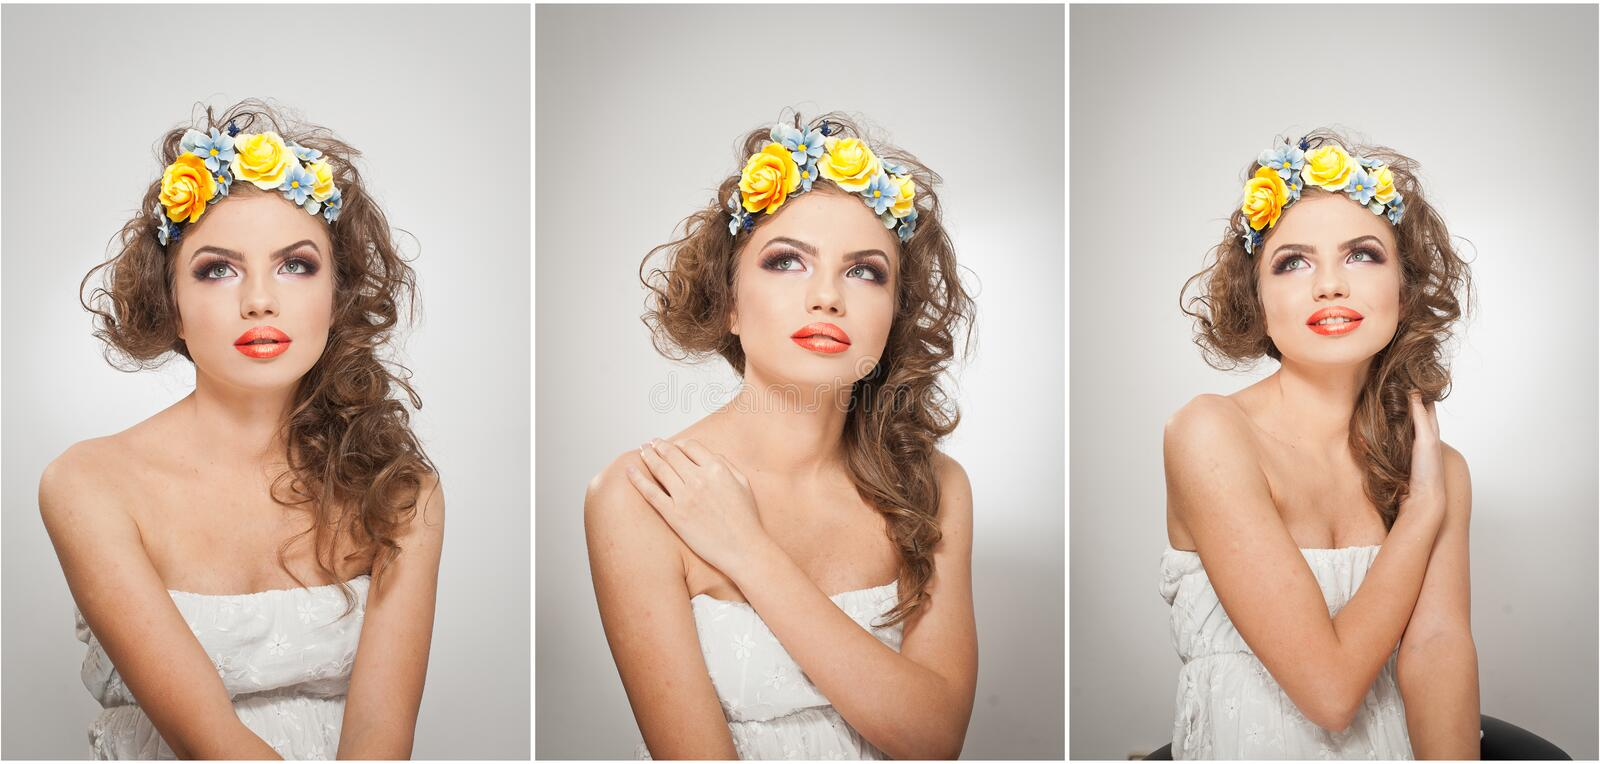 Portrait of beautiful girl in studio with yellow roses in her hair and naked shoulders. young woman with professional makeup royalty free stock photo